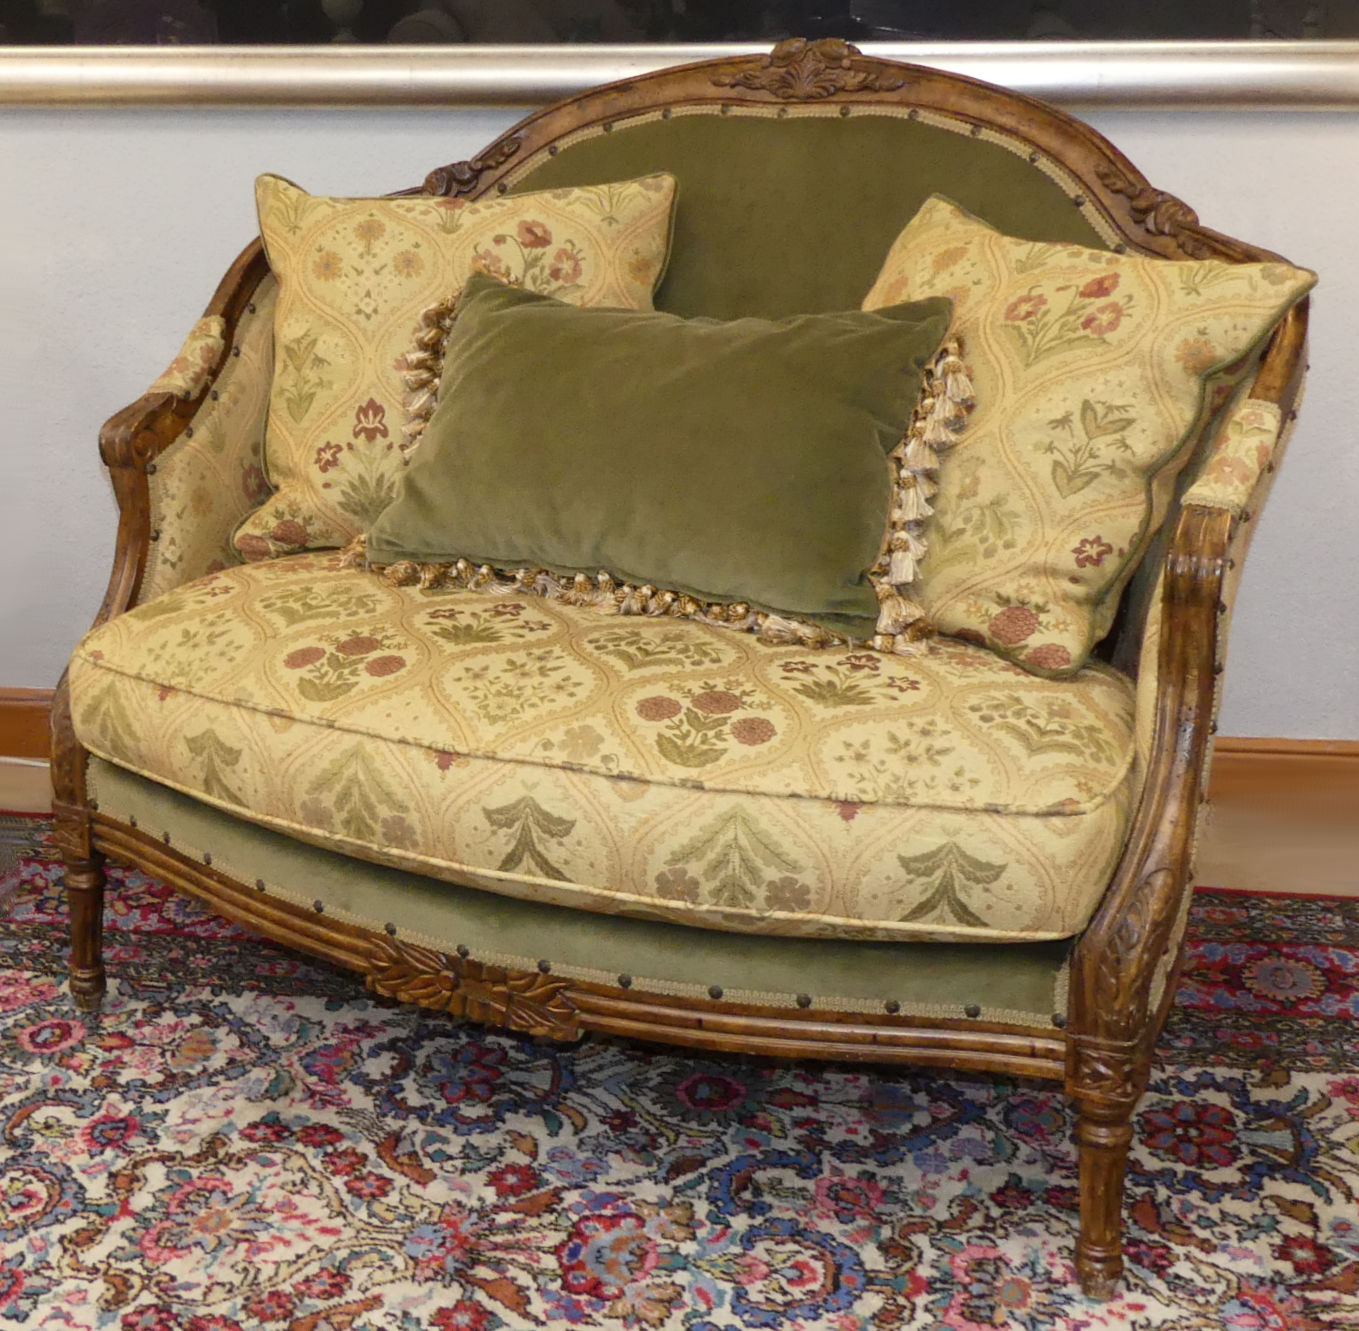 SOLD Robb & Stucky French Loveseat in the style of Carol Hicks Bolton